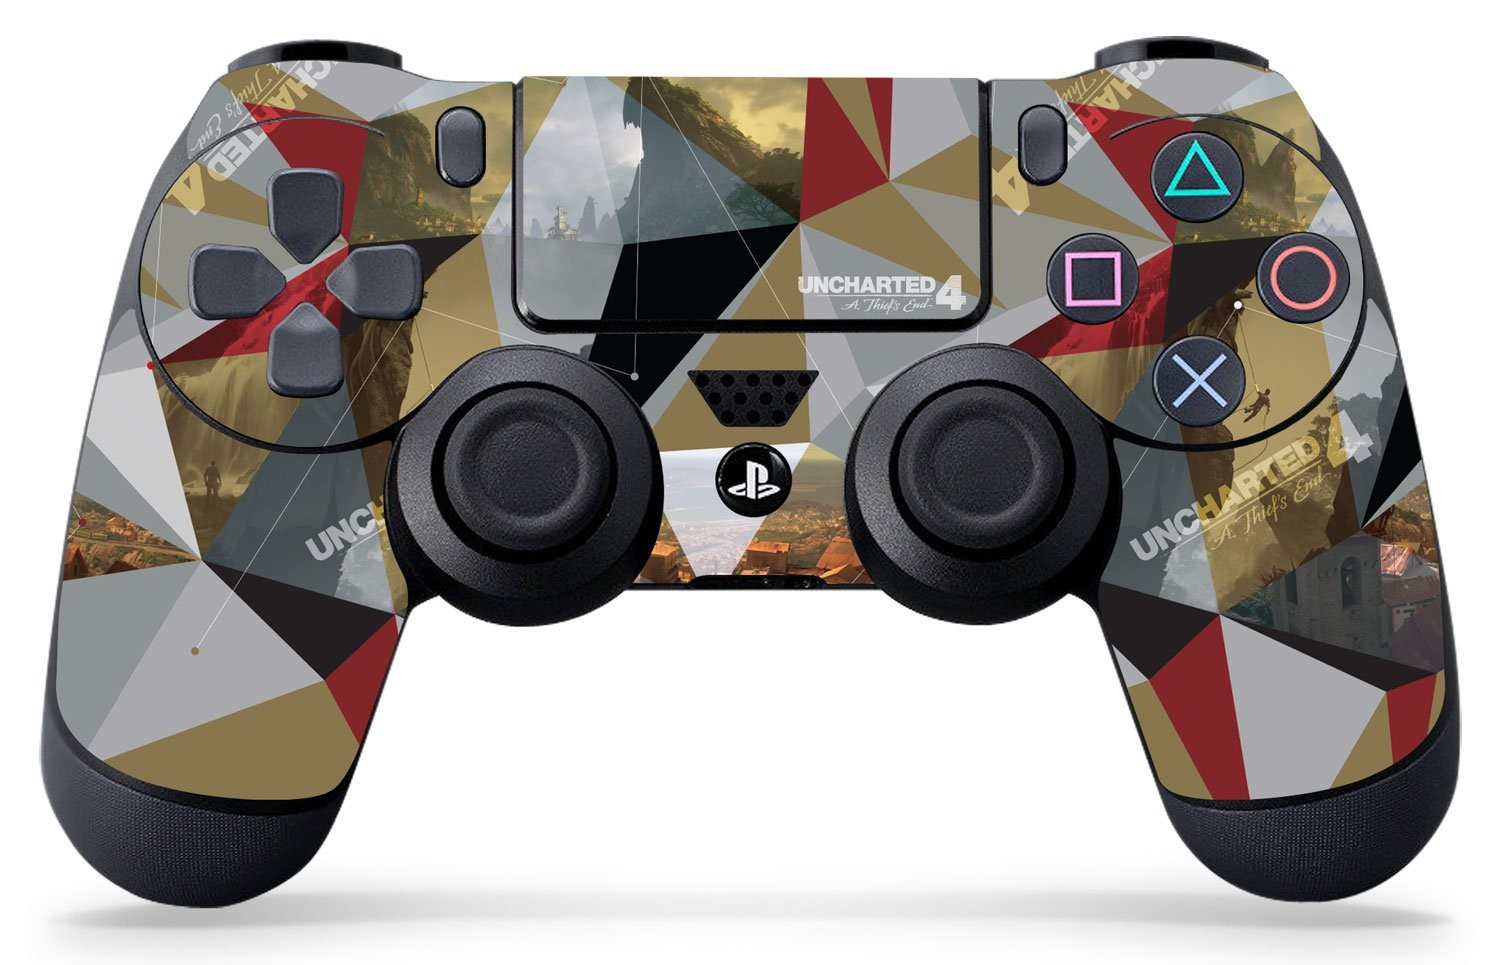 Uncharted 4 Madagascar - PS4 Controller Skin - Officially Licensed by PlayStation - Controller Gear